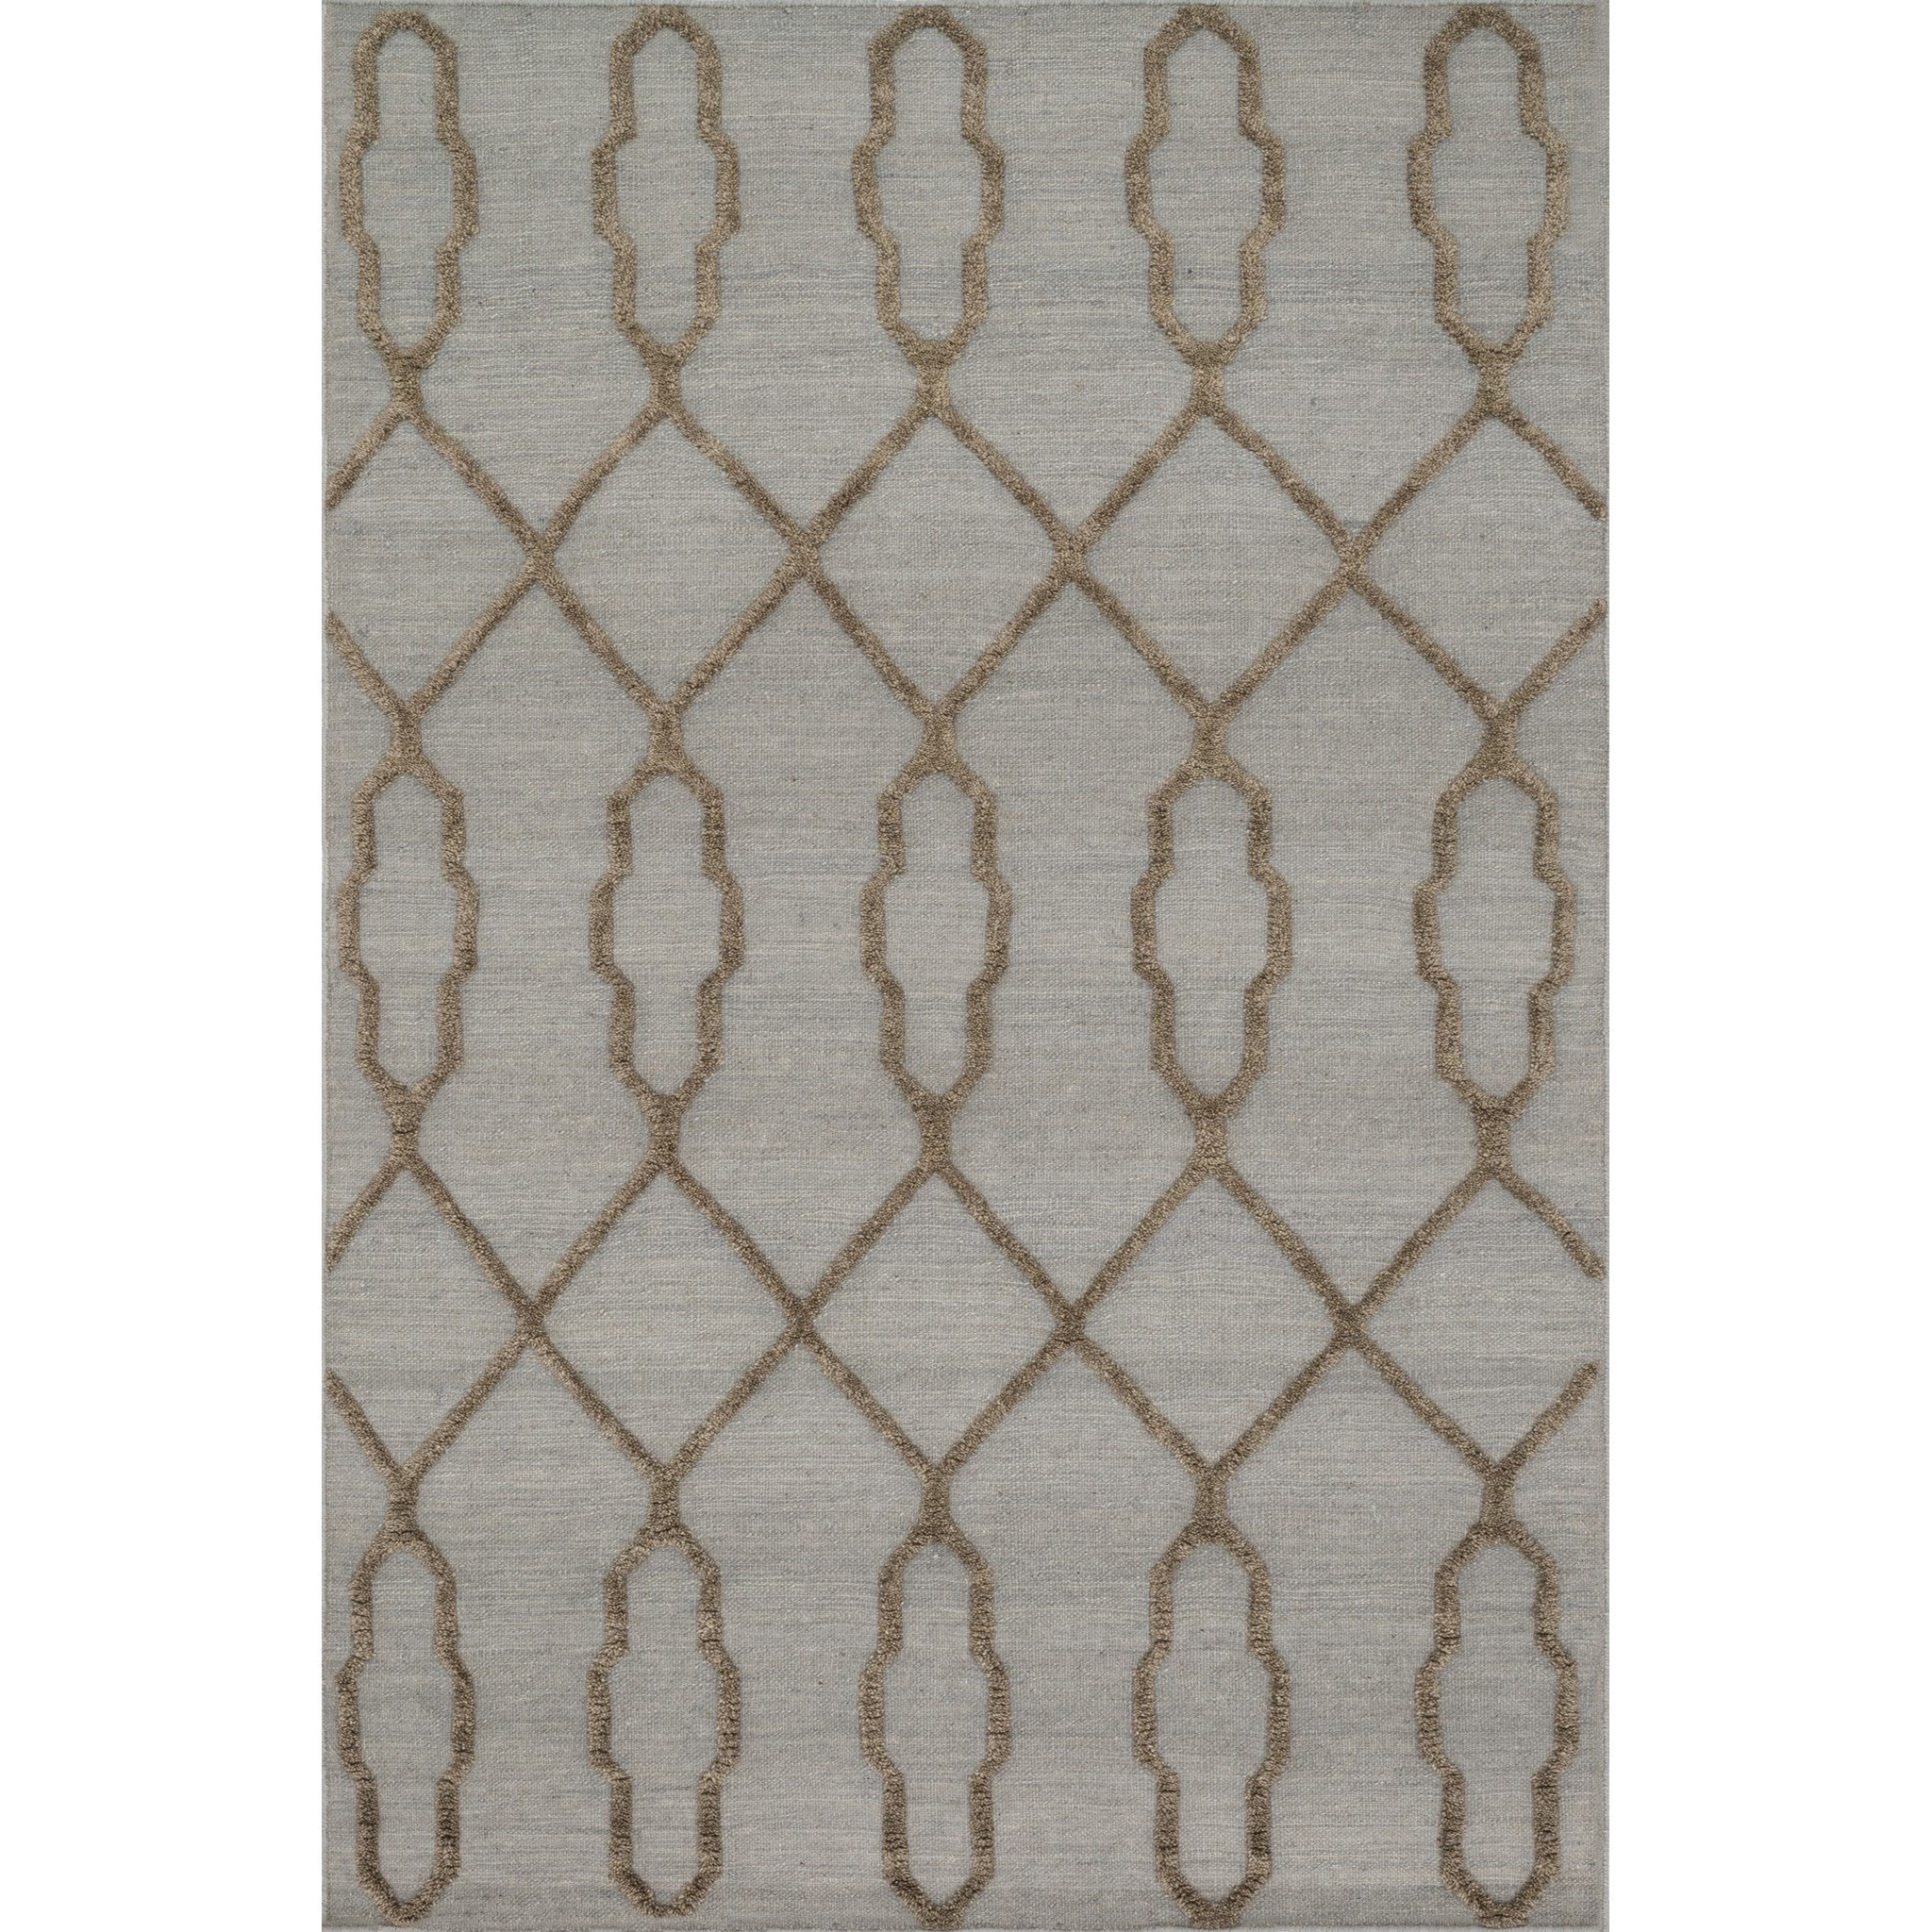 """Adler 3'-6"""" x 5'-6"""" Area Rug by Loloi Rugs at Virginia Furniture Market"""